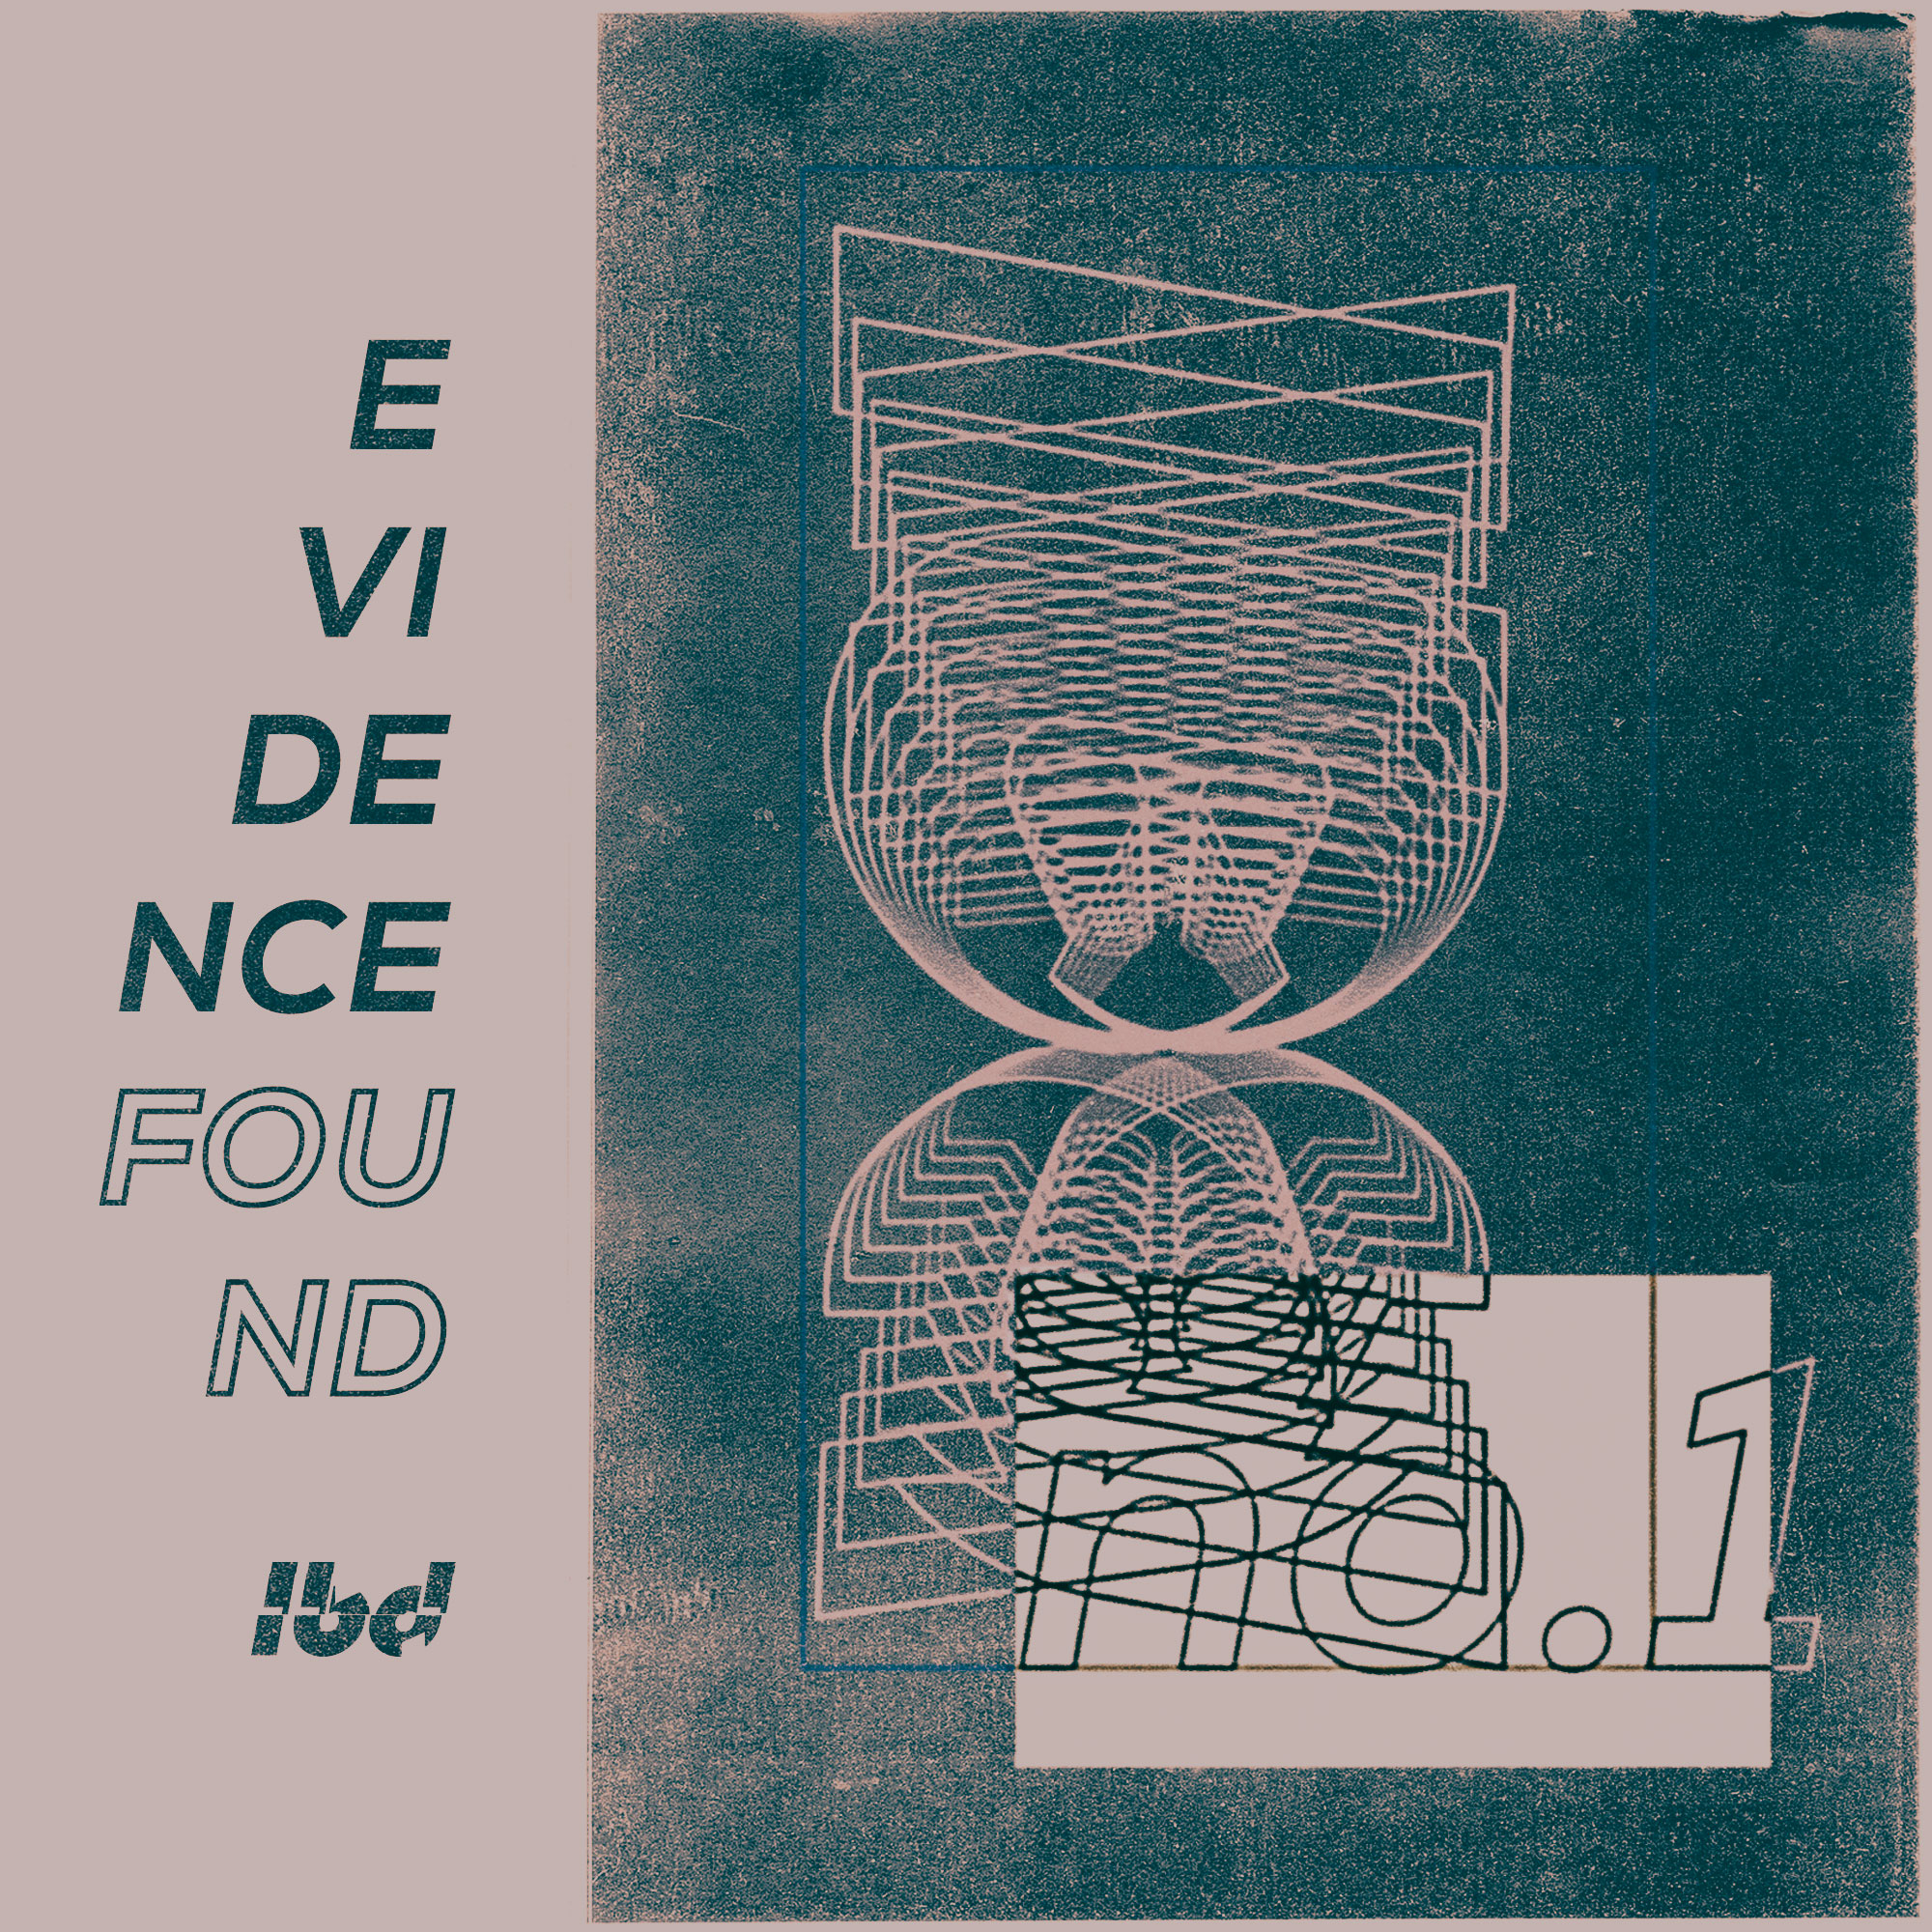 [LBDIGITAL003]-Evidence-found-no.1